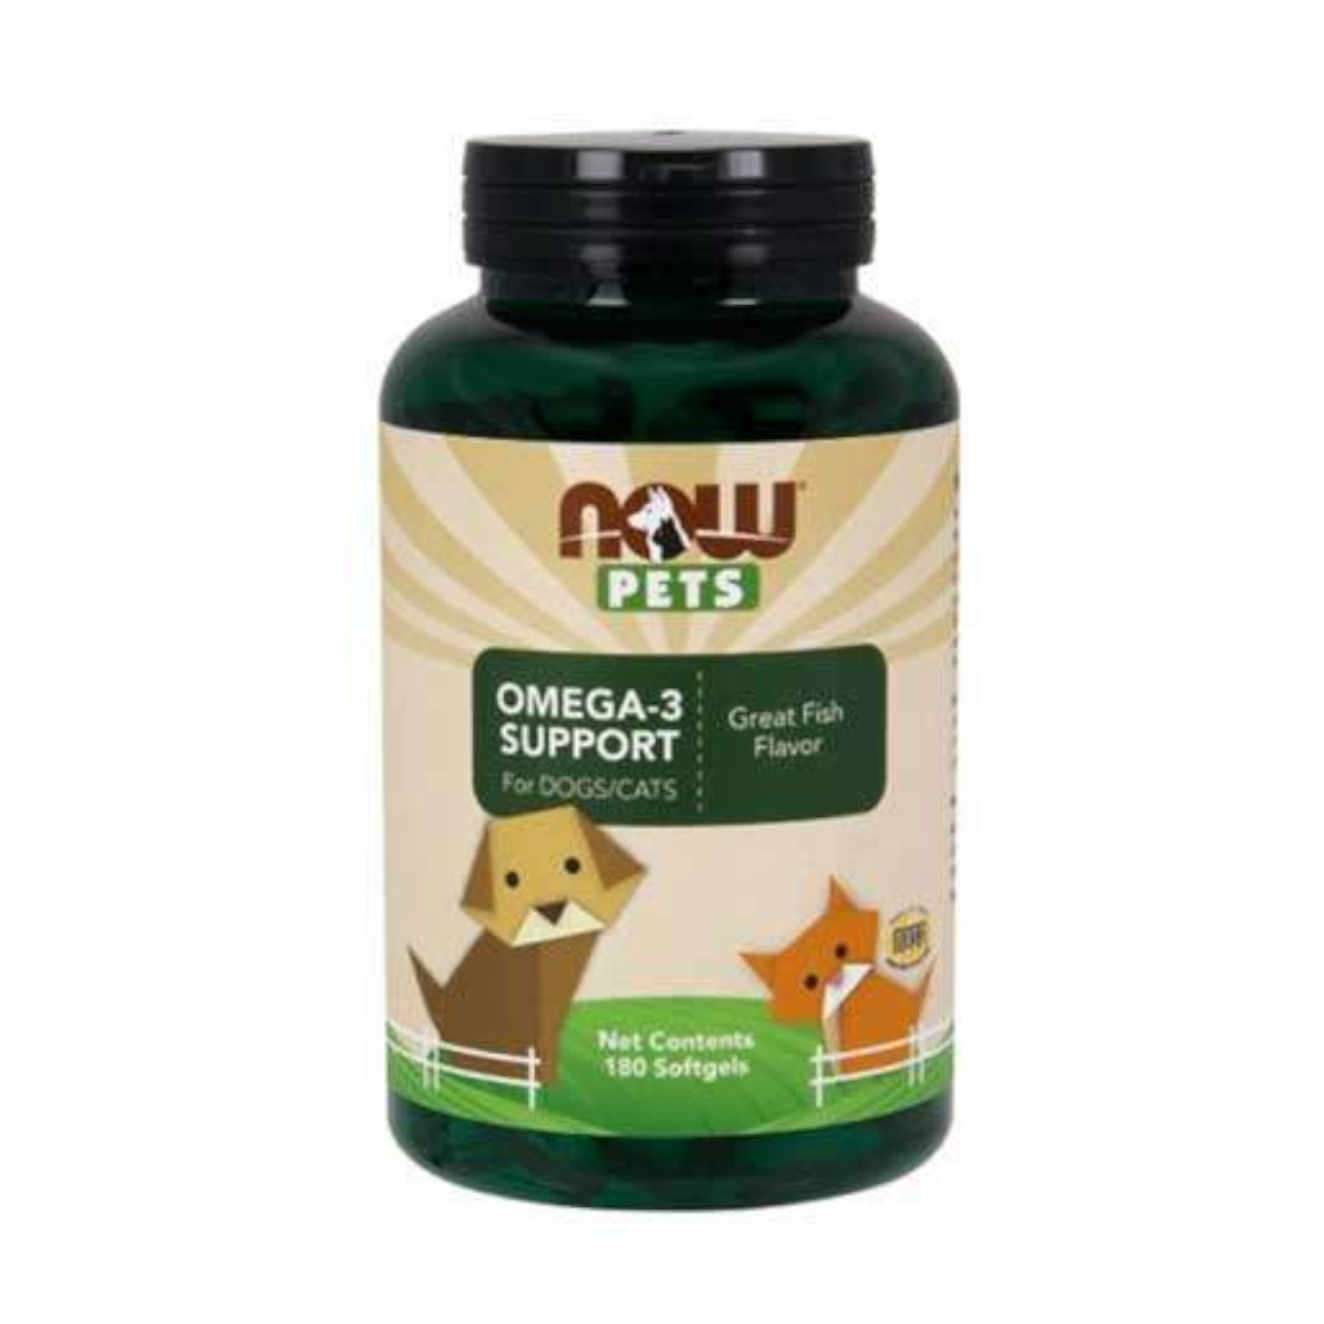 OMEGA-3 SUPPORT FOR DOGS/CATS - 180 softgels